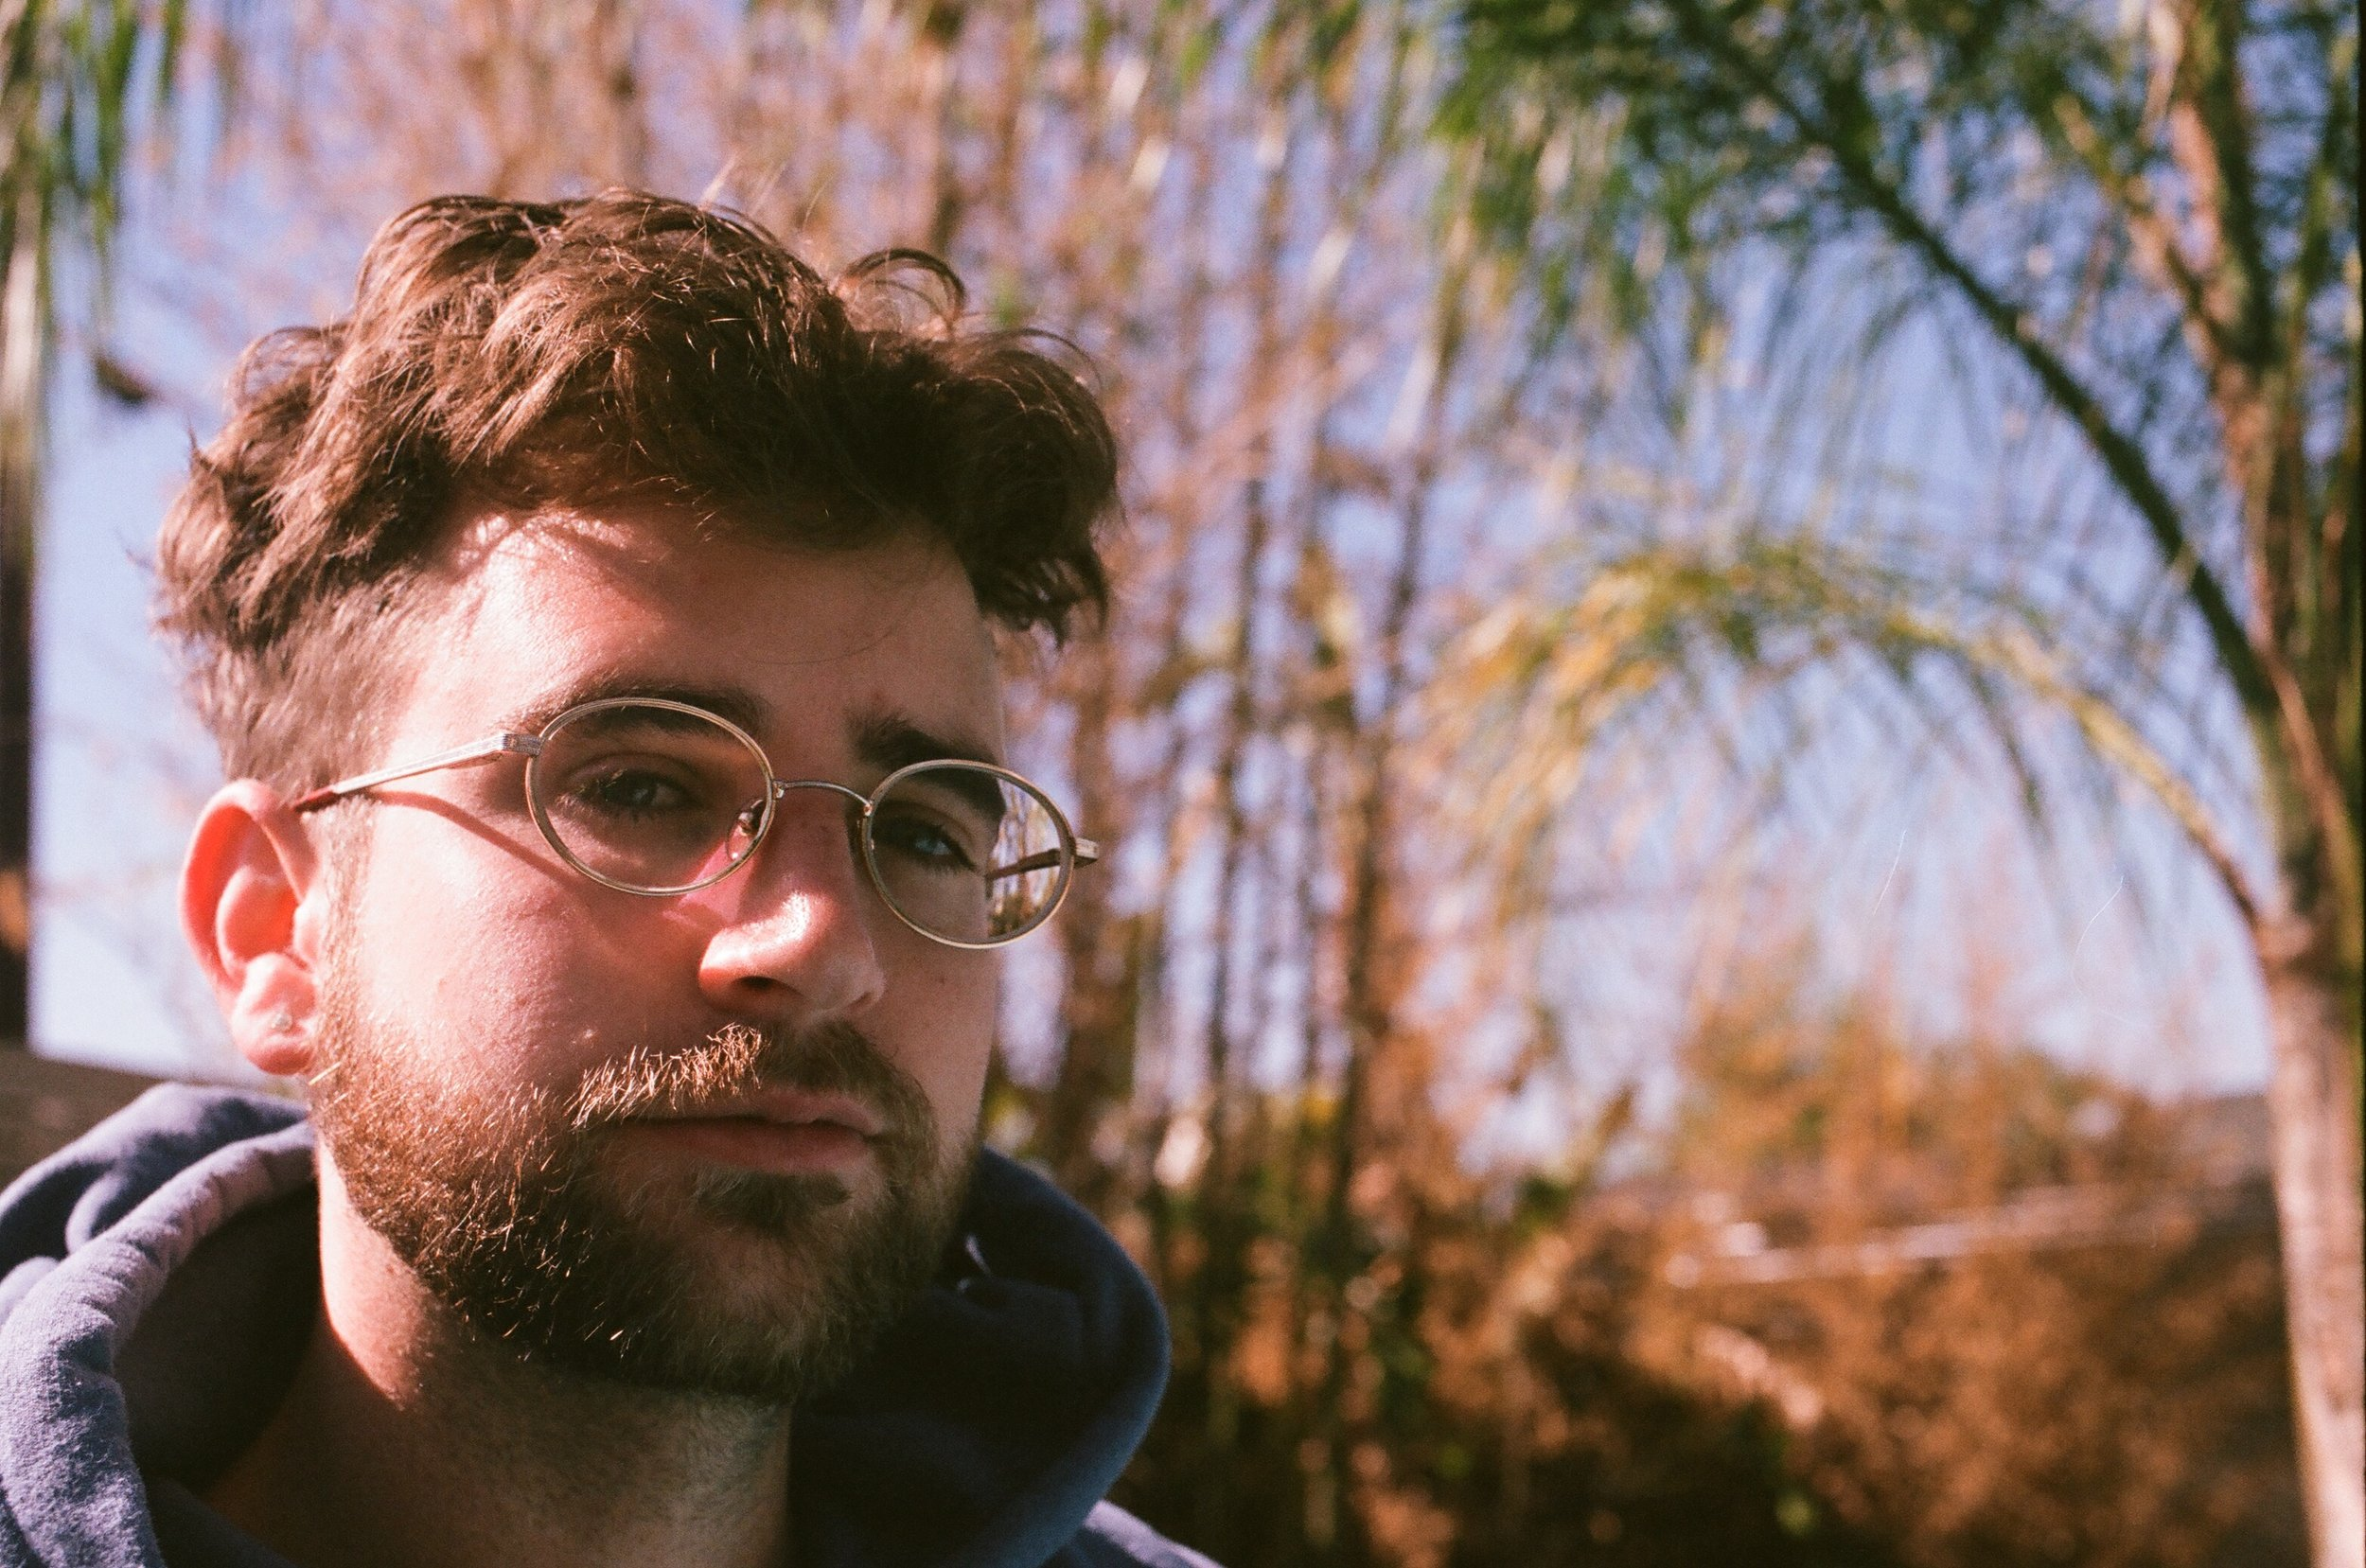 Calvin Valentine in His Backyard on 35mm film by Emily Berkey